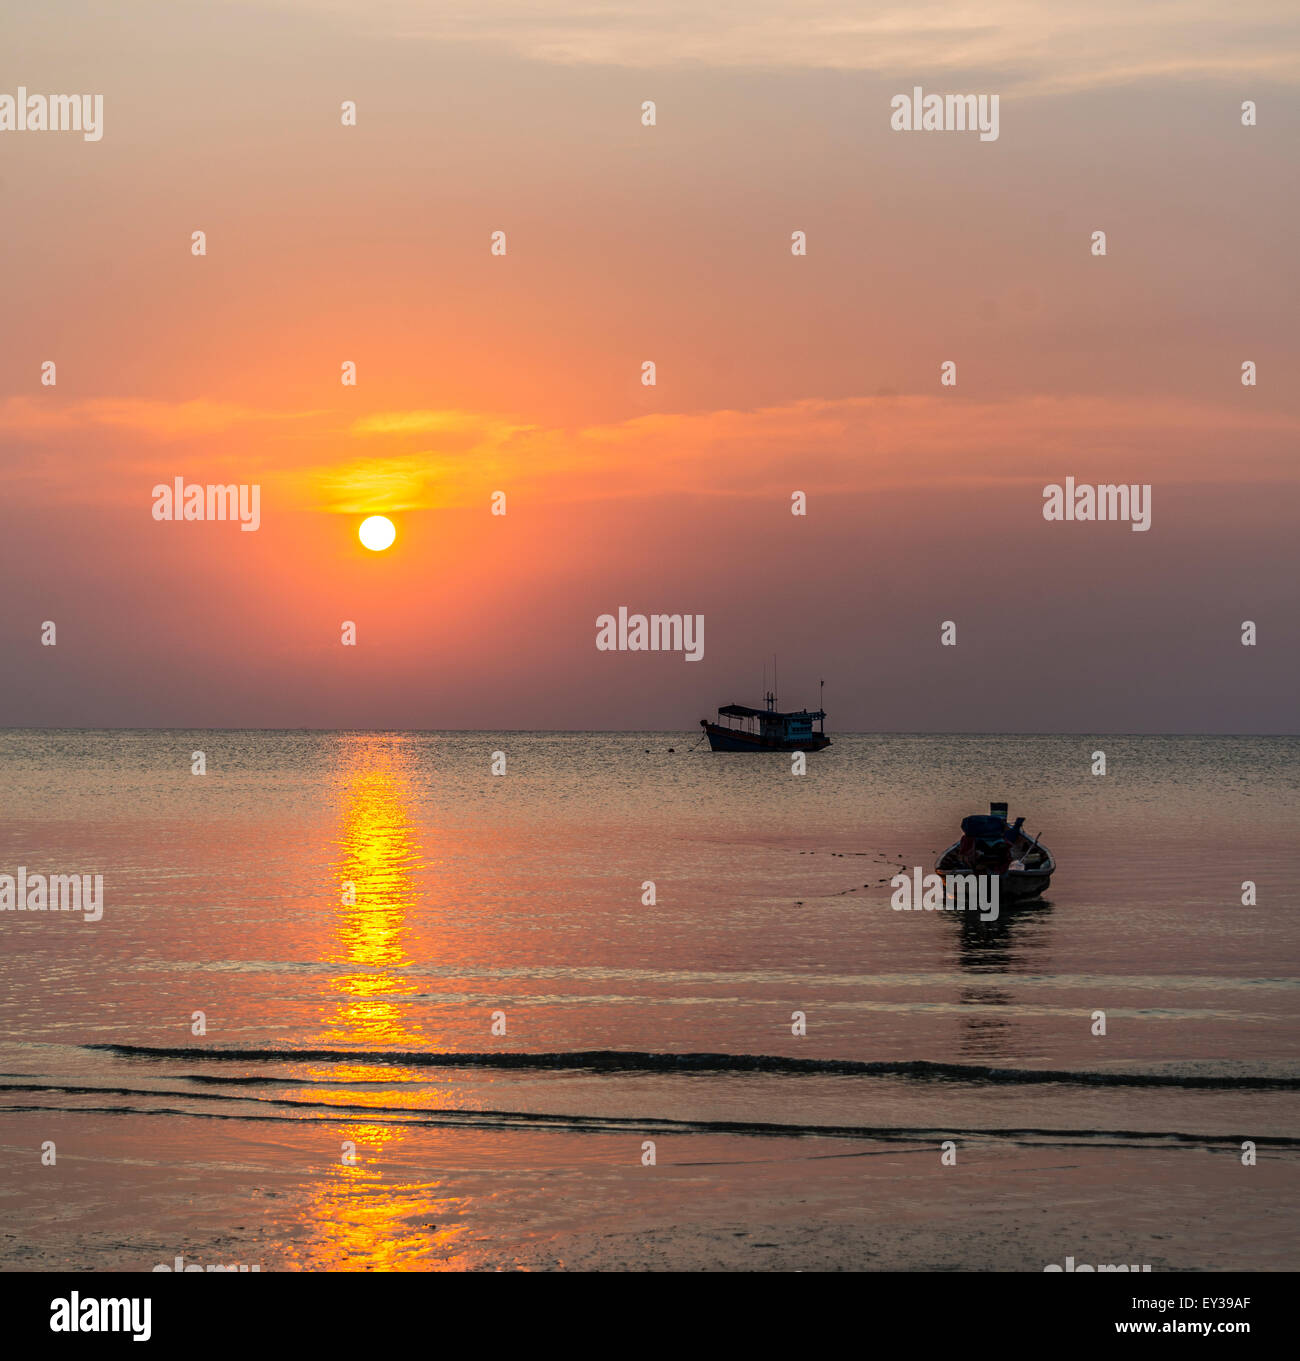 South China Sea at sunset with boats, Gulf of Thailand, Koh Tao island, Thailand - Stock Image